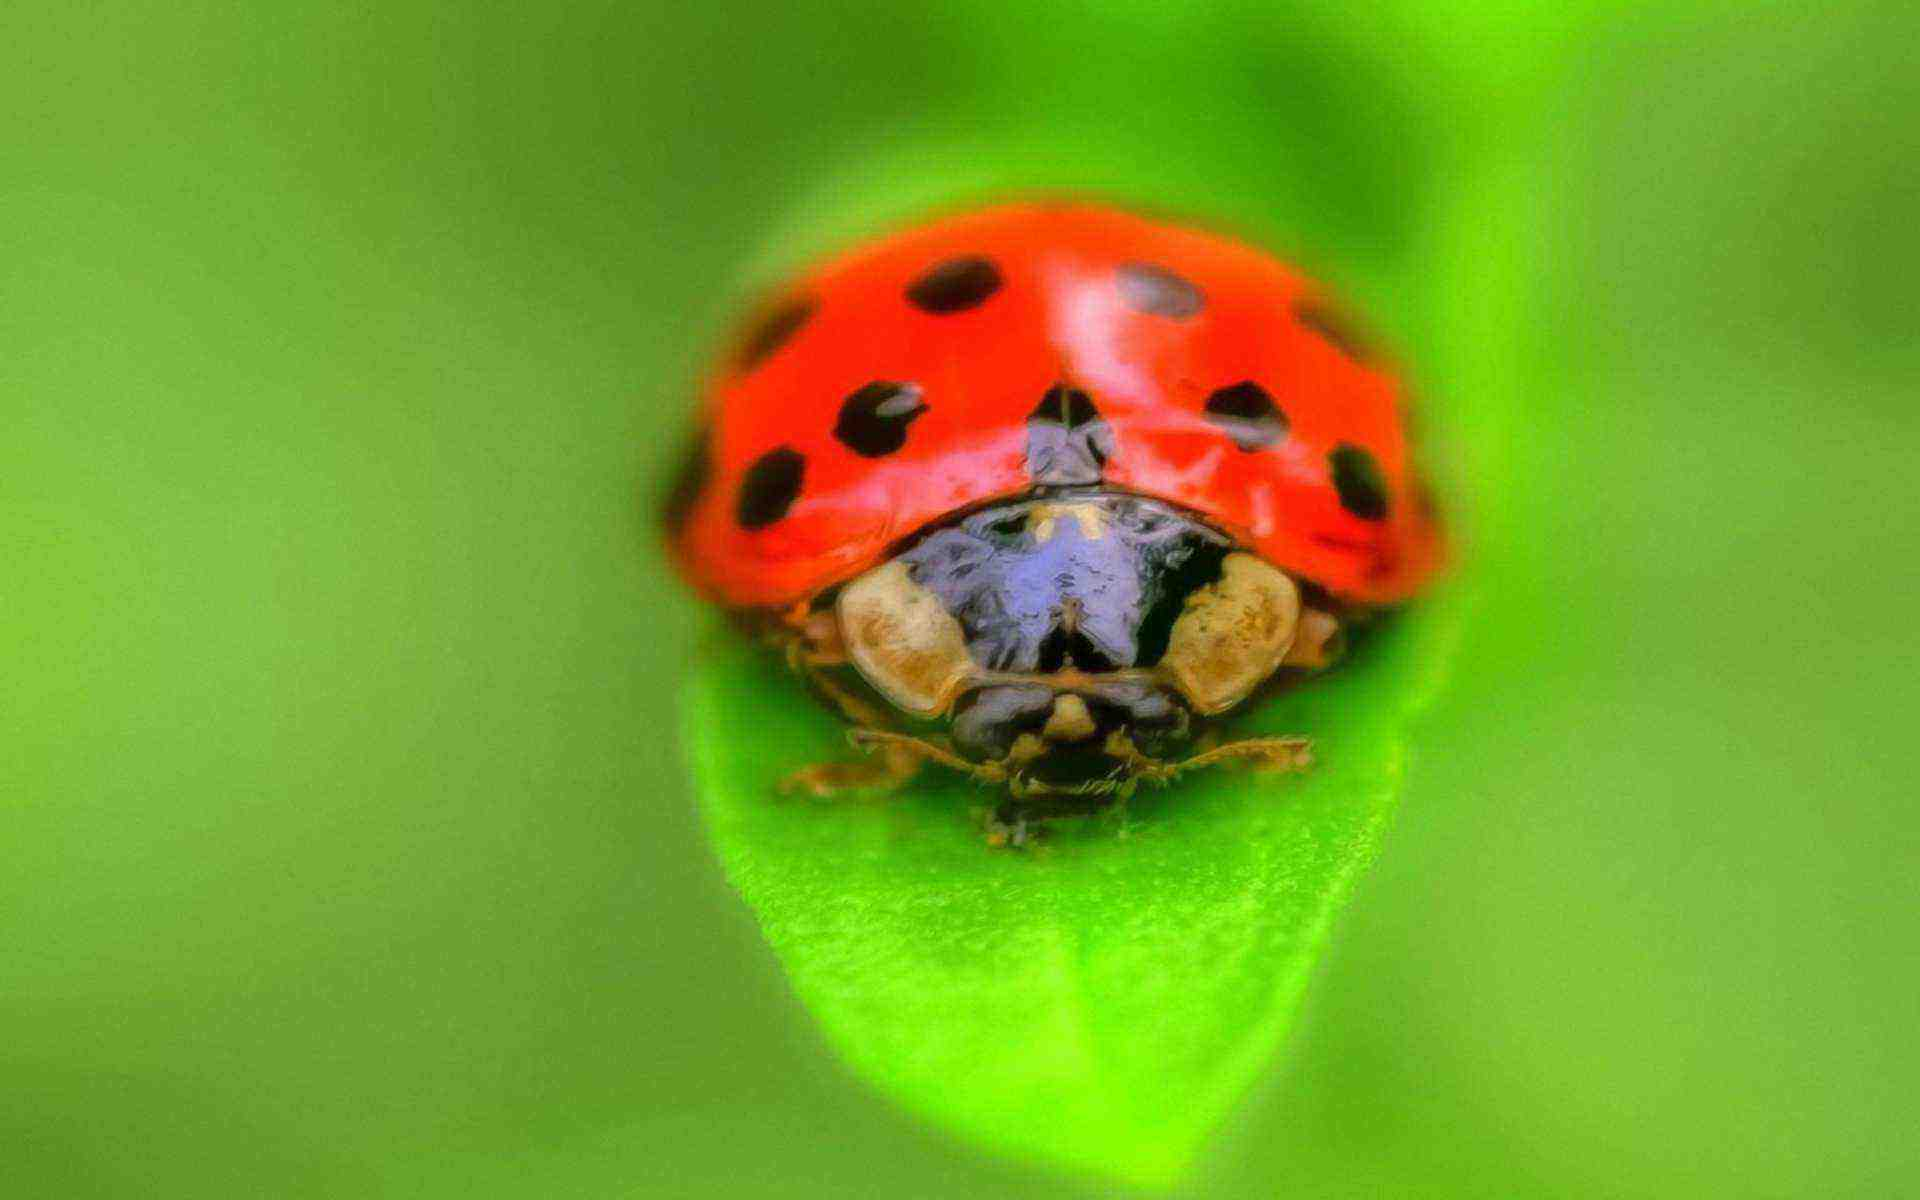 DOWNLOAD: ladybug grass insect free picture 2560 x 1600